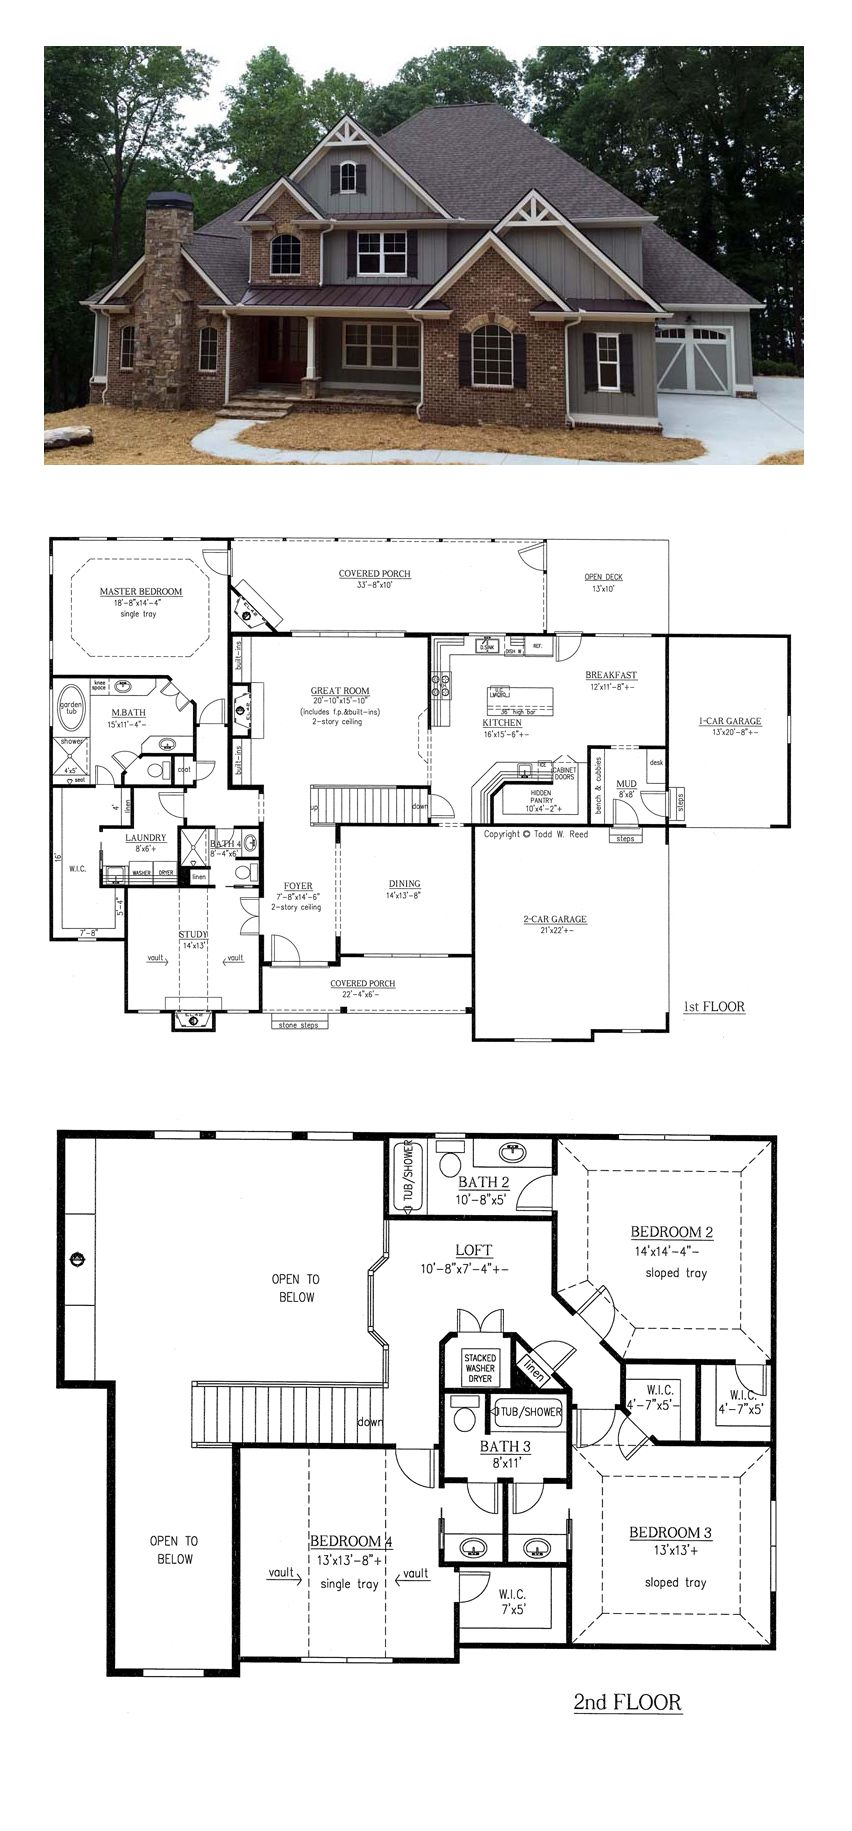 French country house plan 50263 total living area 3290 for 2 floor 4 bedroom house plans